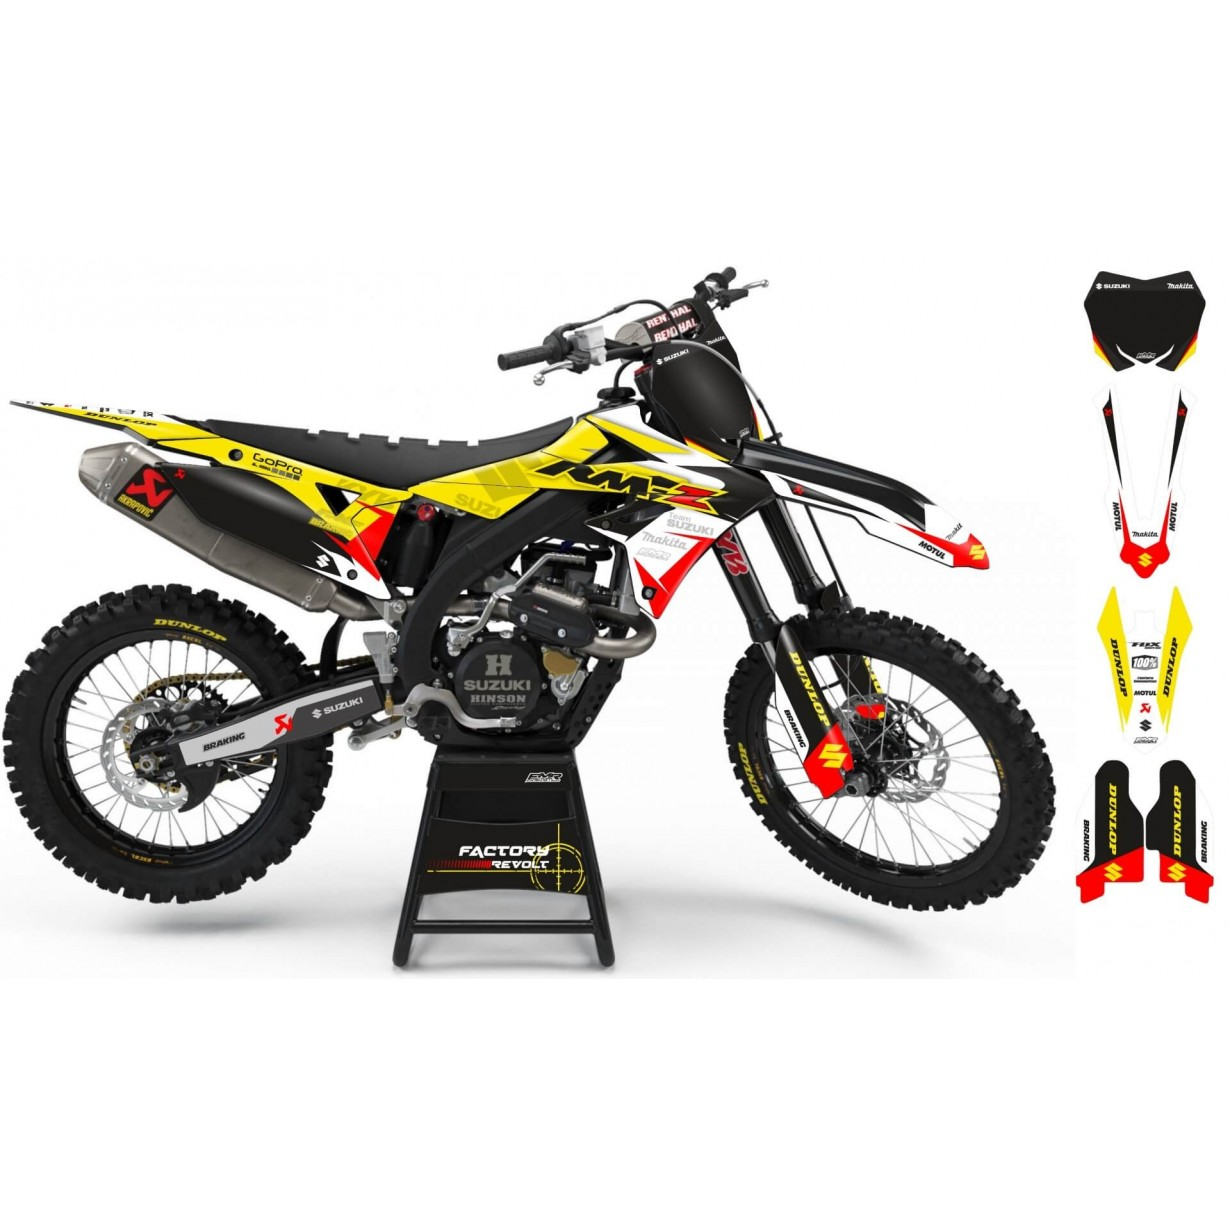 Kit déco Perso SUZUKI Factory Revolt A26D4 white/yellow/red